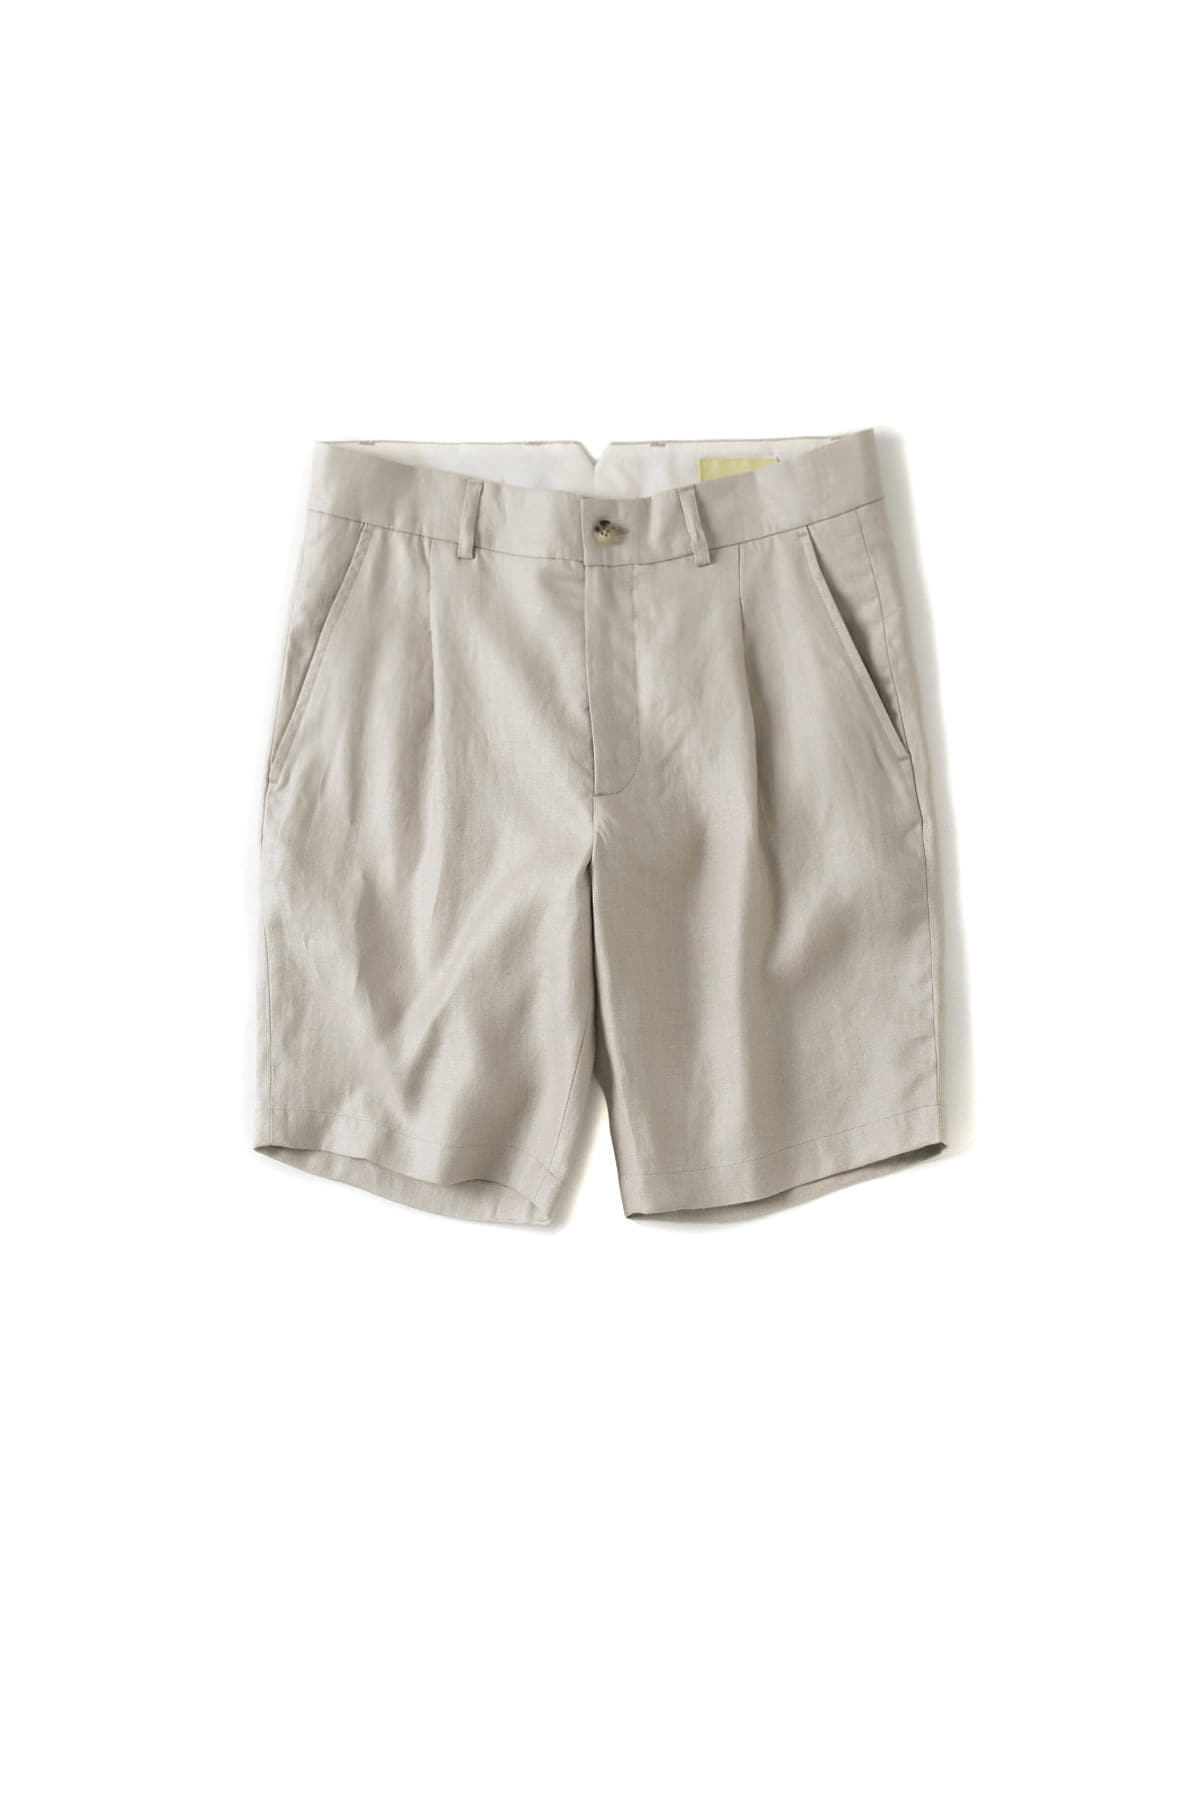 de bonne facture : One Pleat Bermuda Shorts (Sand)